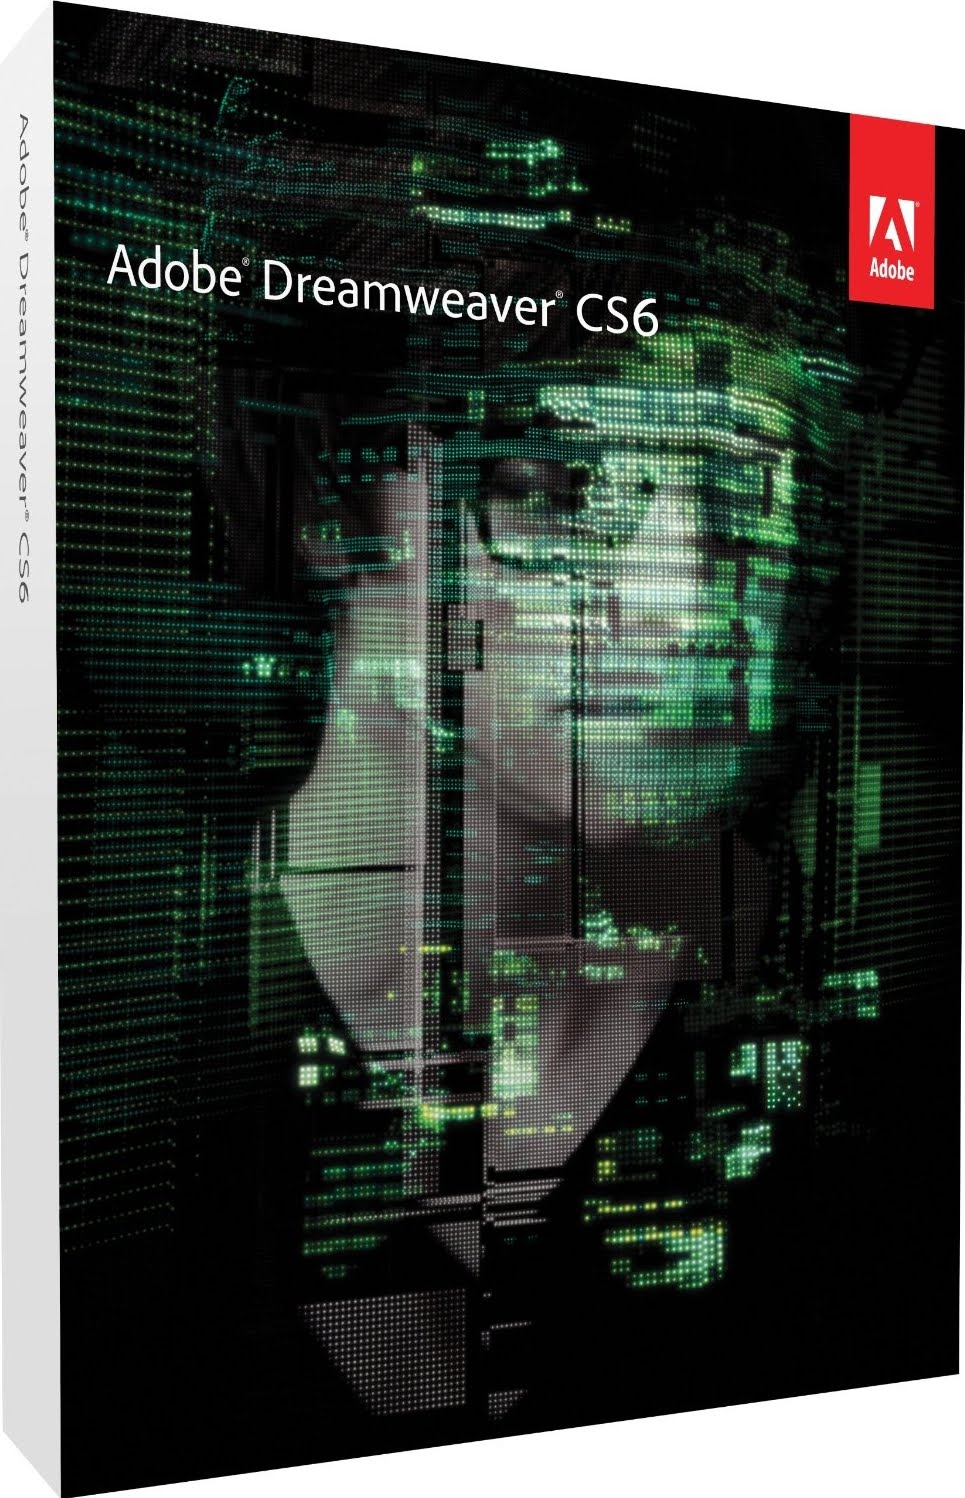 Free Adobe Dreamweaver CS6 12.0 Full Version Serial crack keygen Activated mediafire Zippyshare Download http://apkdrod.blogspot.com